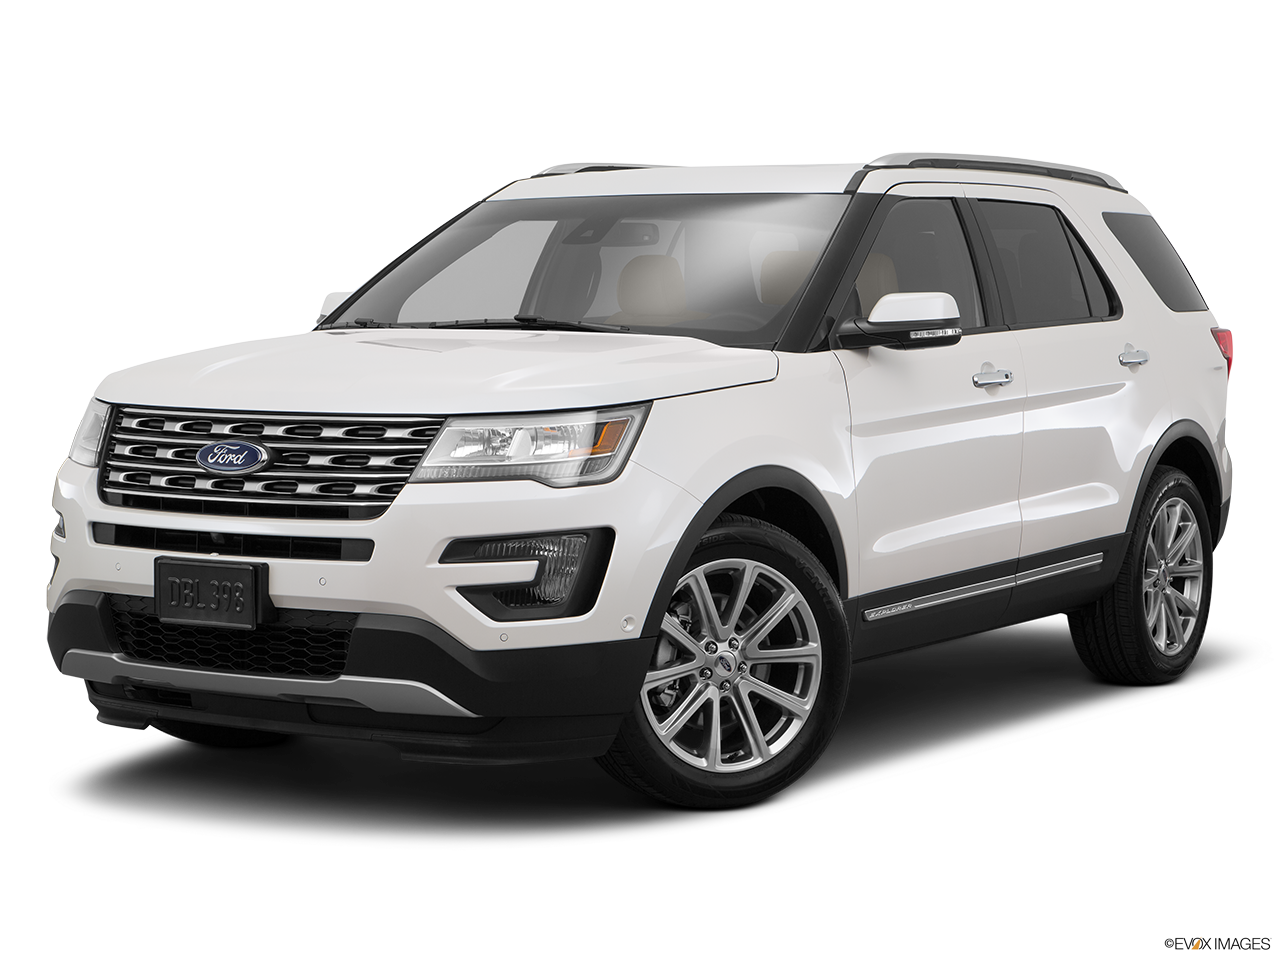 Test Drive A 2017 Ford Explorer at Huntington Beach Ford in Huntington Beach